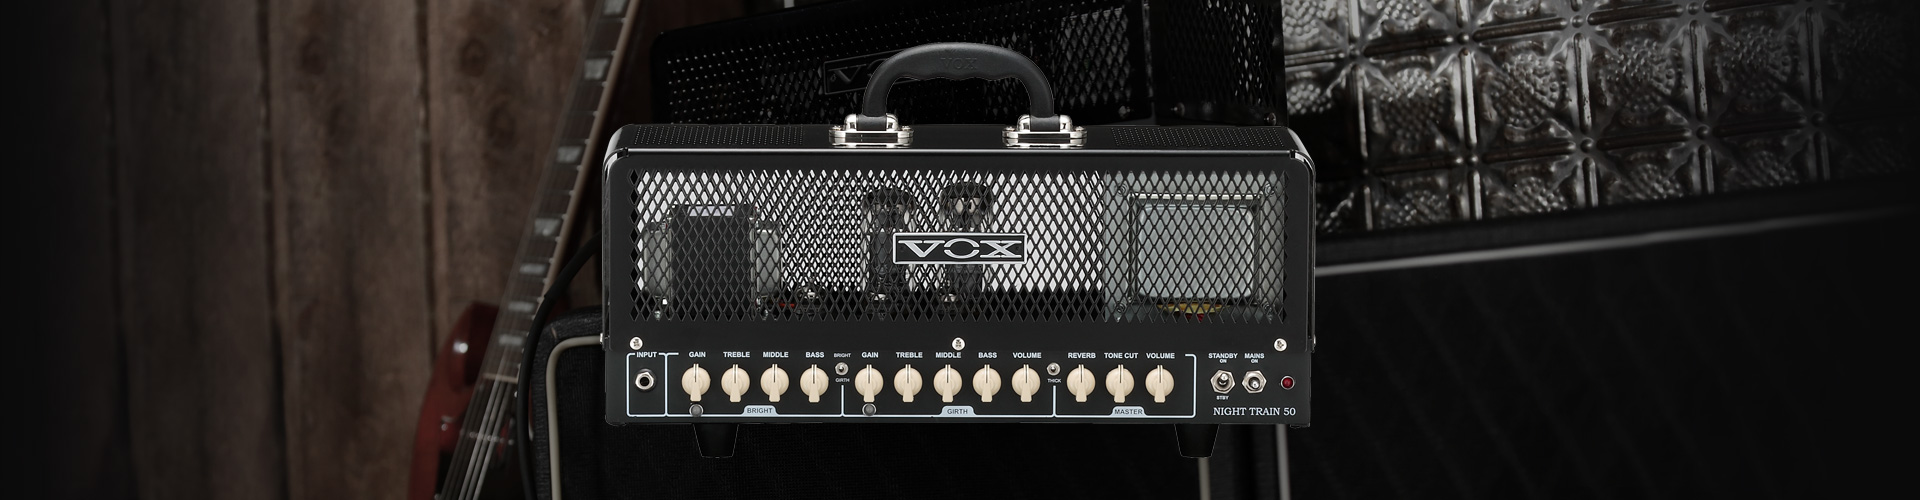 VOX Night Train NT50H-G2 Head/Cab 吉他音箱头